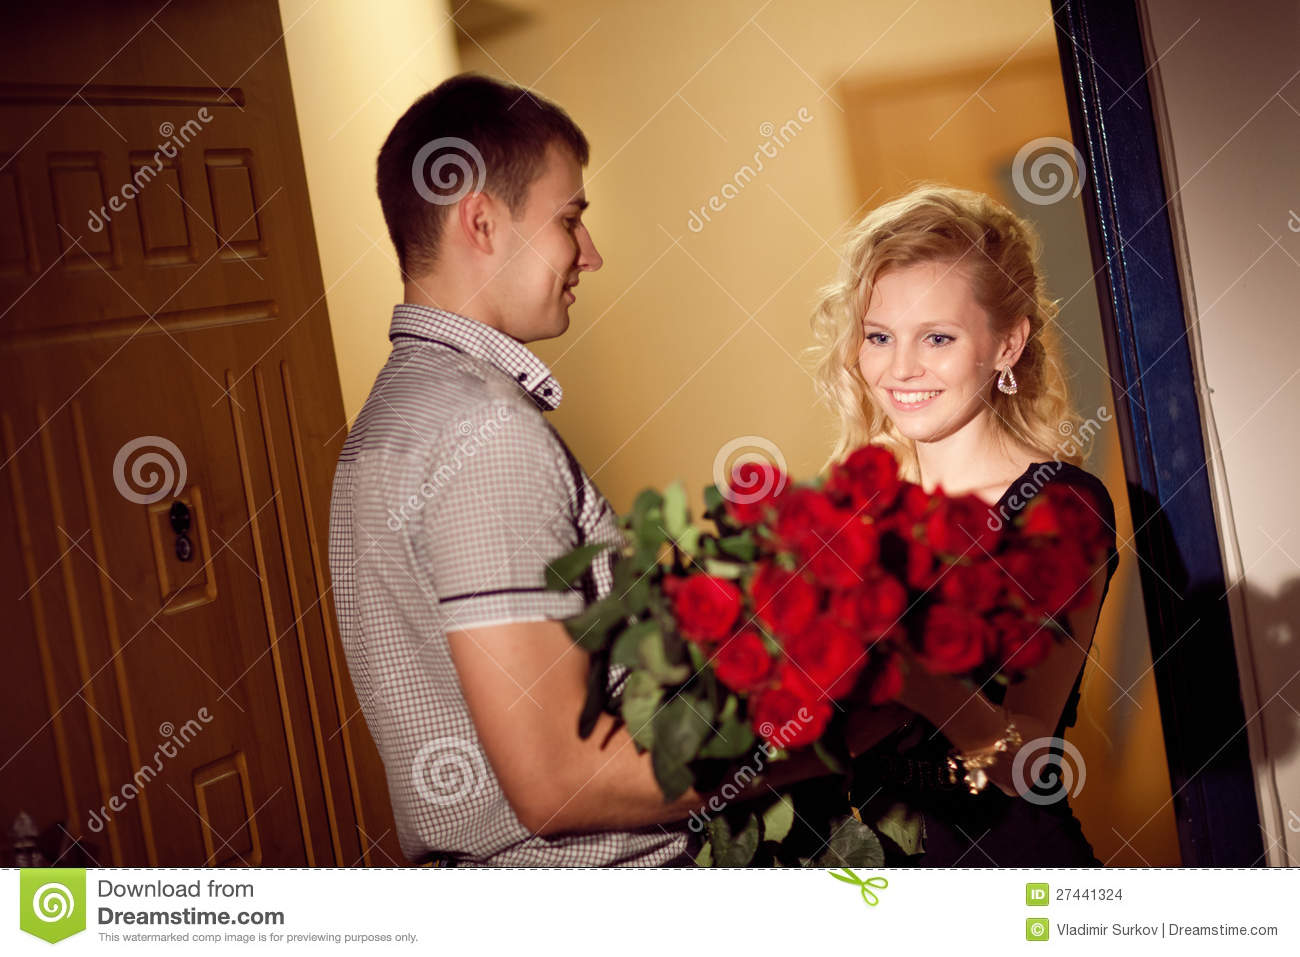 Image result for boy give rose to girl